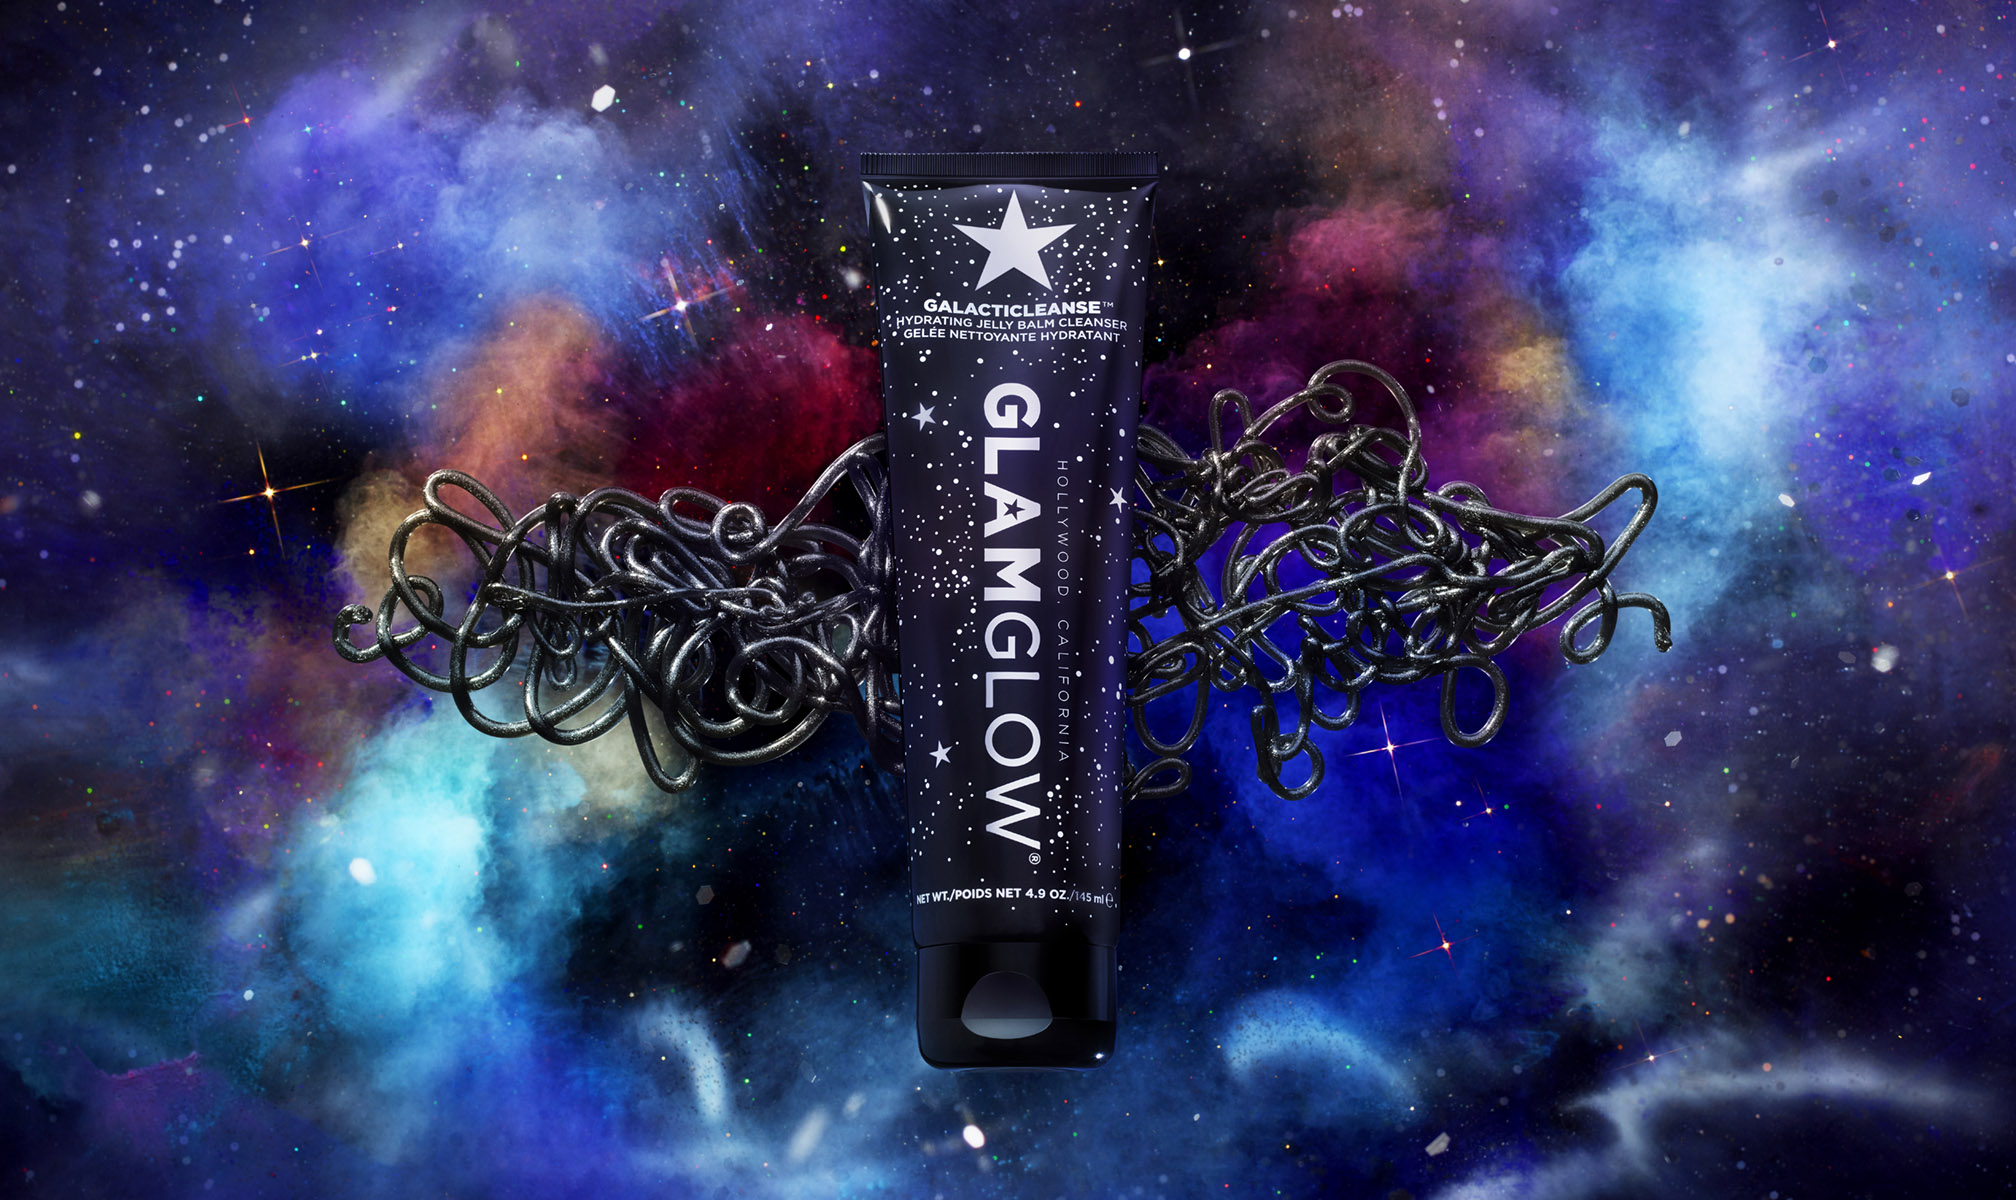 glamGlow_Tmall_Galacticleanse_V1